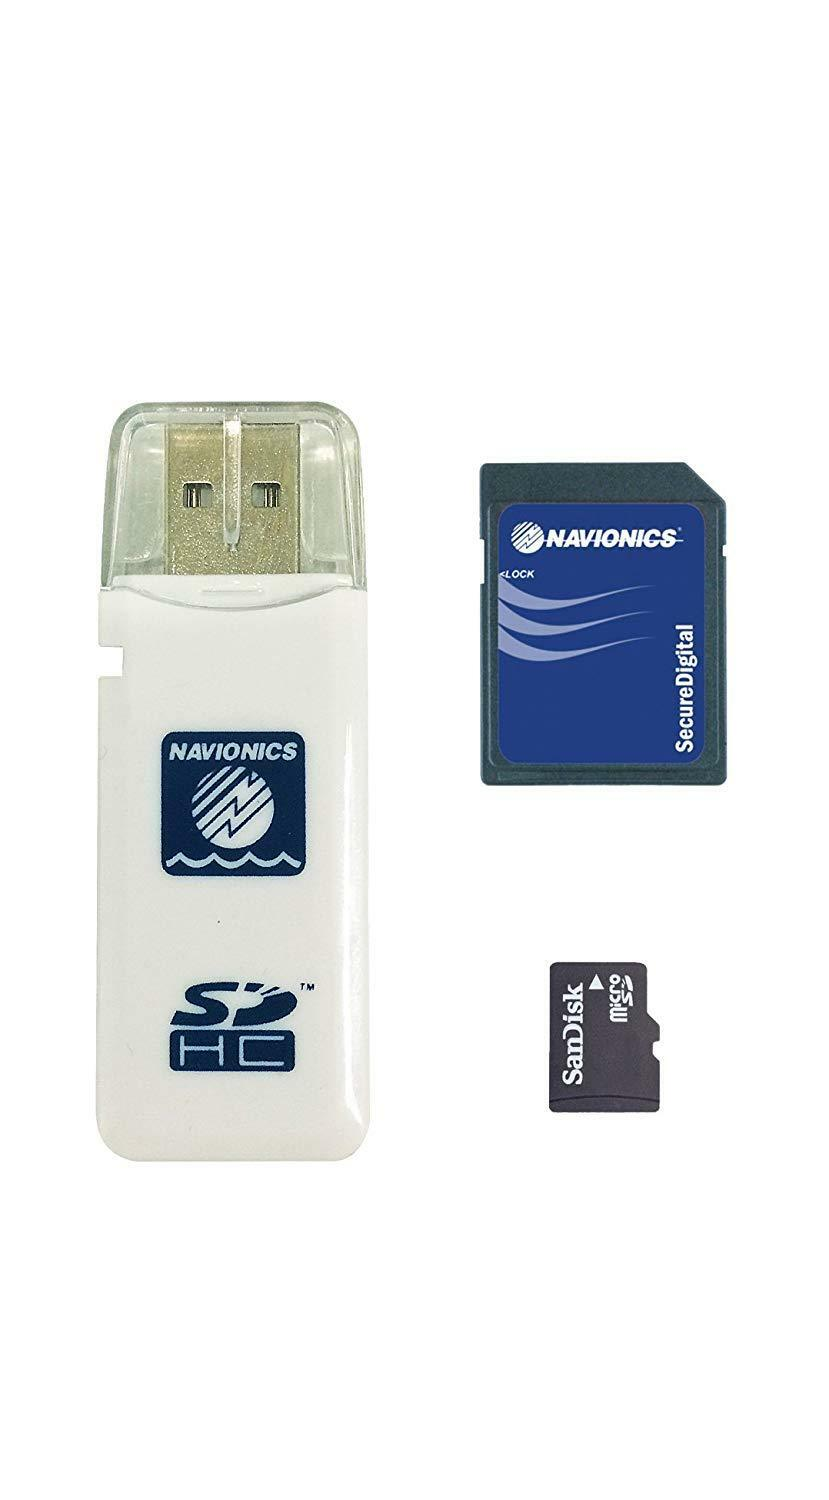 Navionics Norwegen Plus 49XG Global Region Norwegen Navionics Format MicroSD mit SD-Adapter dec25c